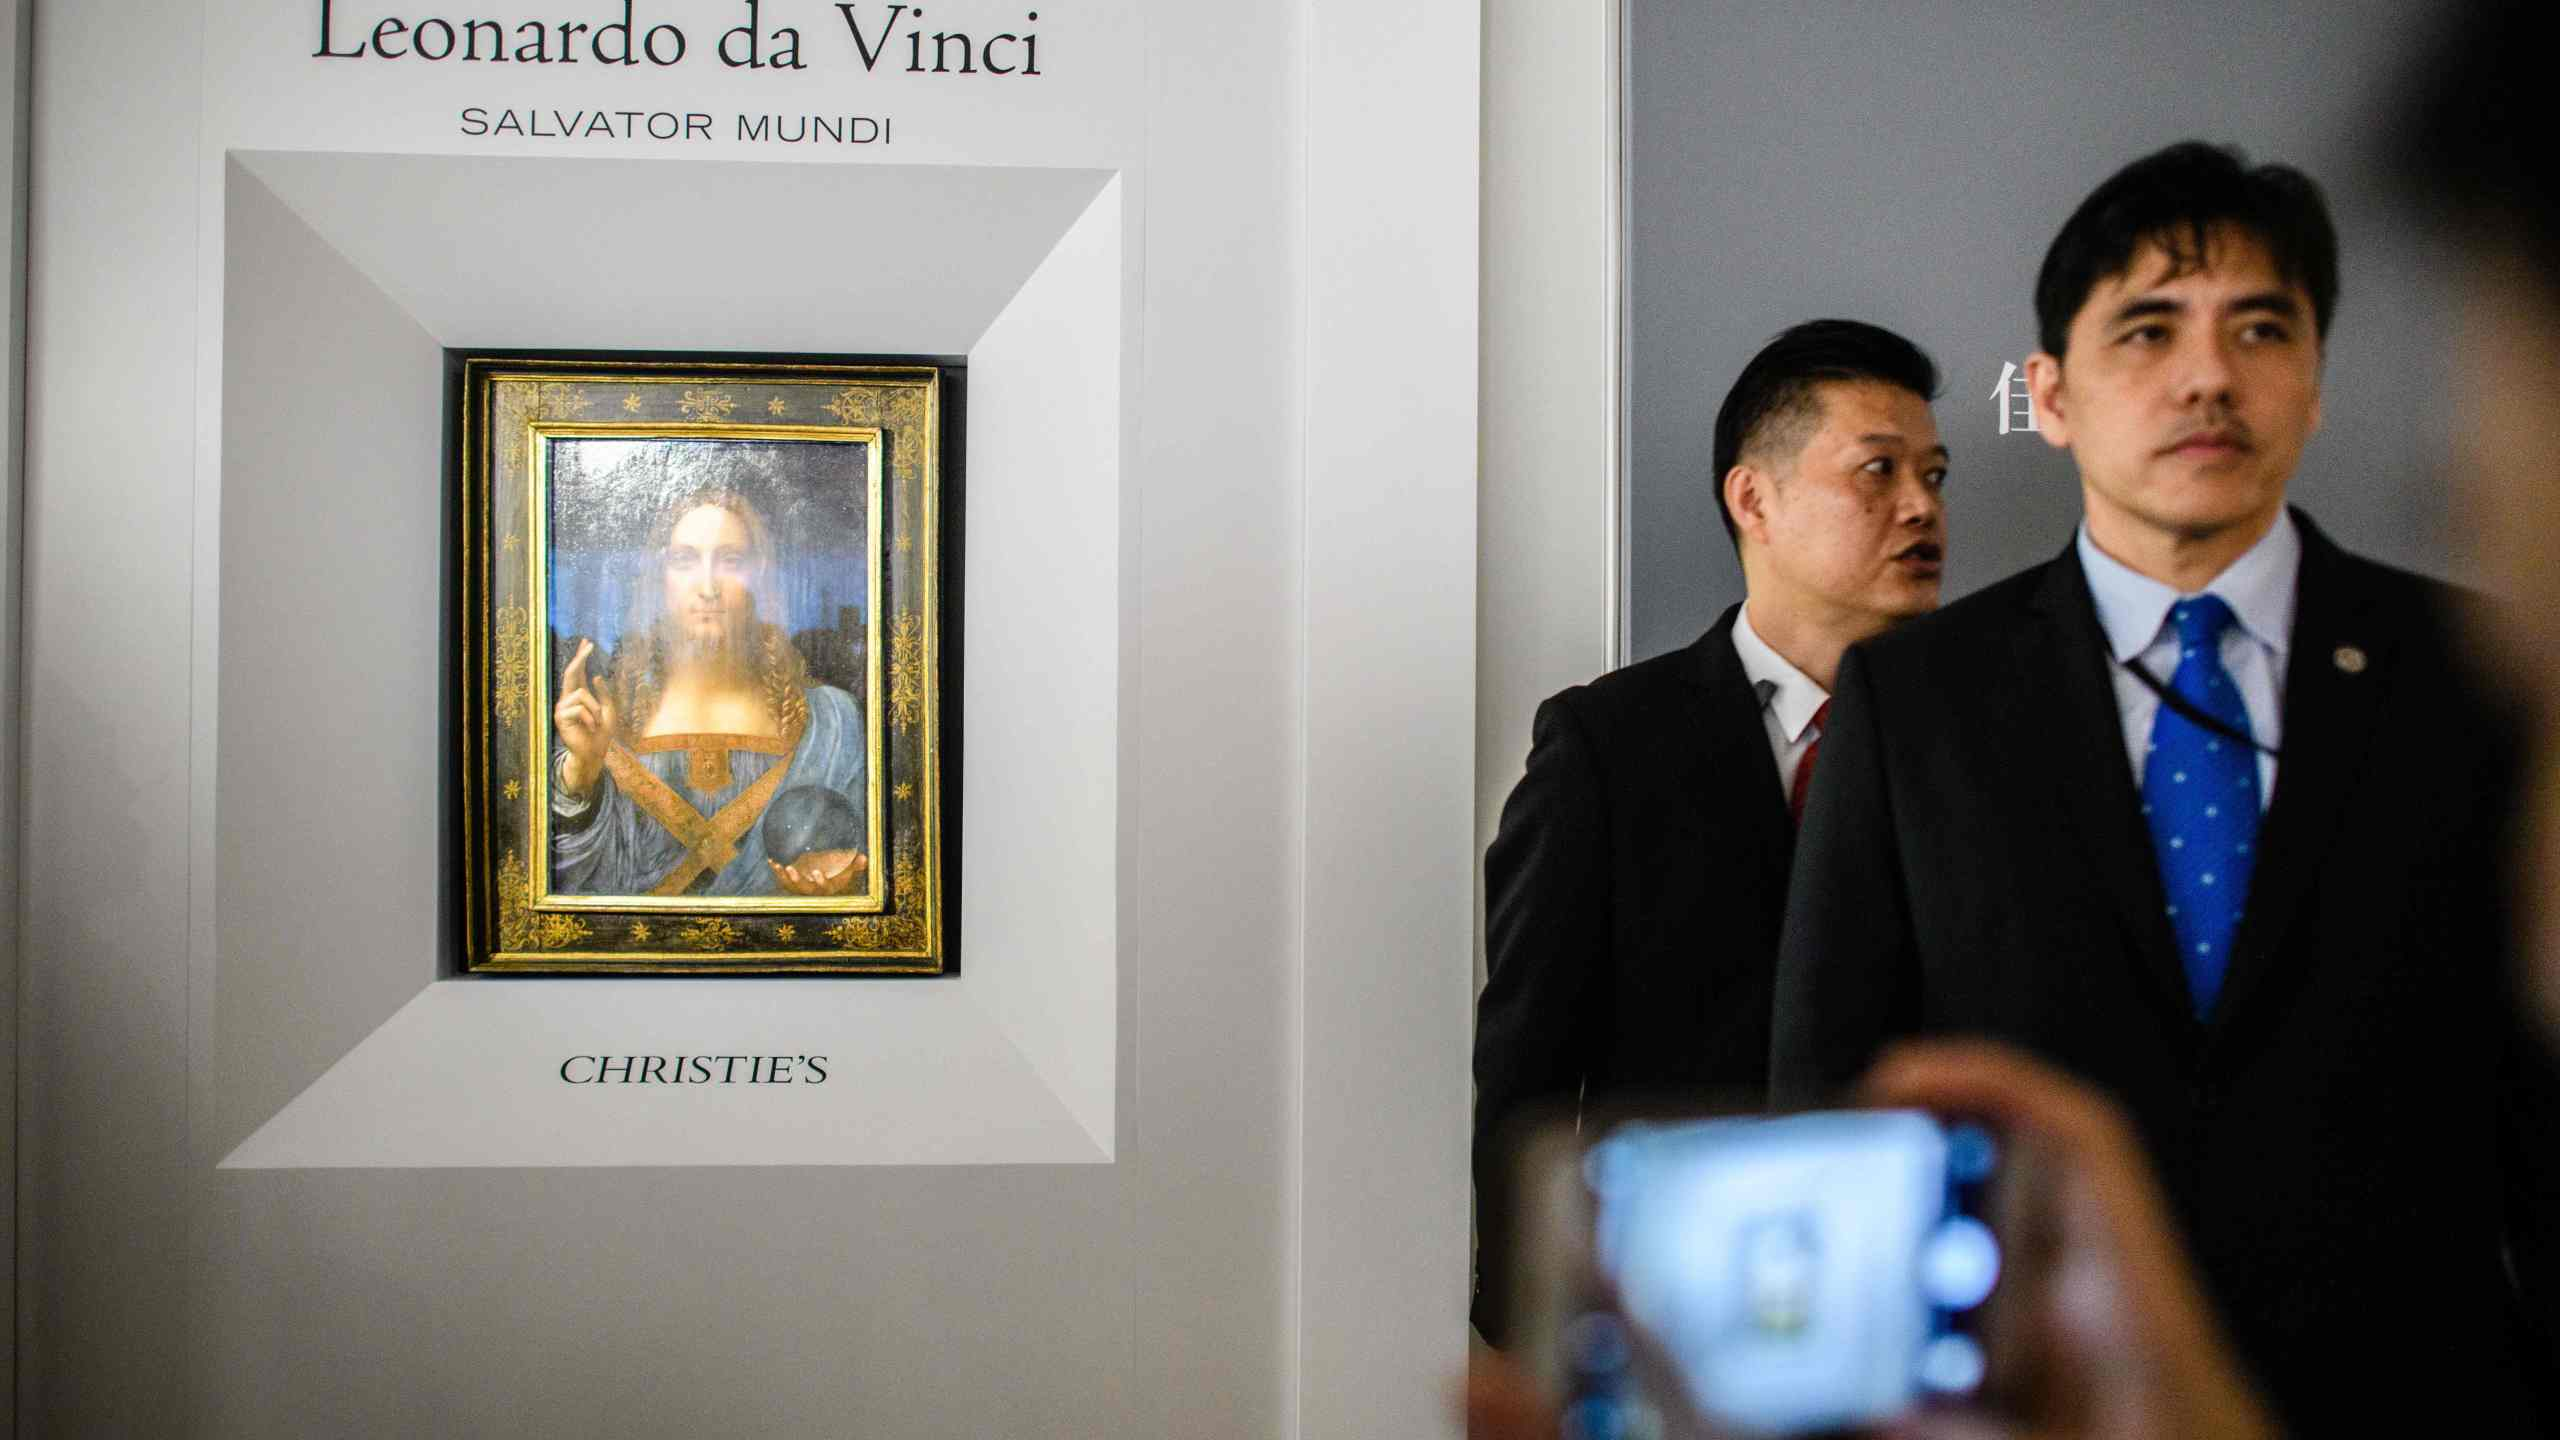 This picture taken on October 13, 2017, shows a man identified by local Hong Kong media as former CIA agent Jerry Chun Shing Lee standing in front of a member of security at the unveiling of Leonardo da Vinci's 'Salvator Mundi' painting at the Christie's showroom in Hong Kong. (Credit: Anthony Wallace/AFP via Getty Images)